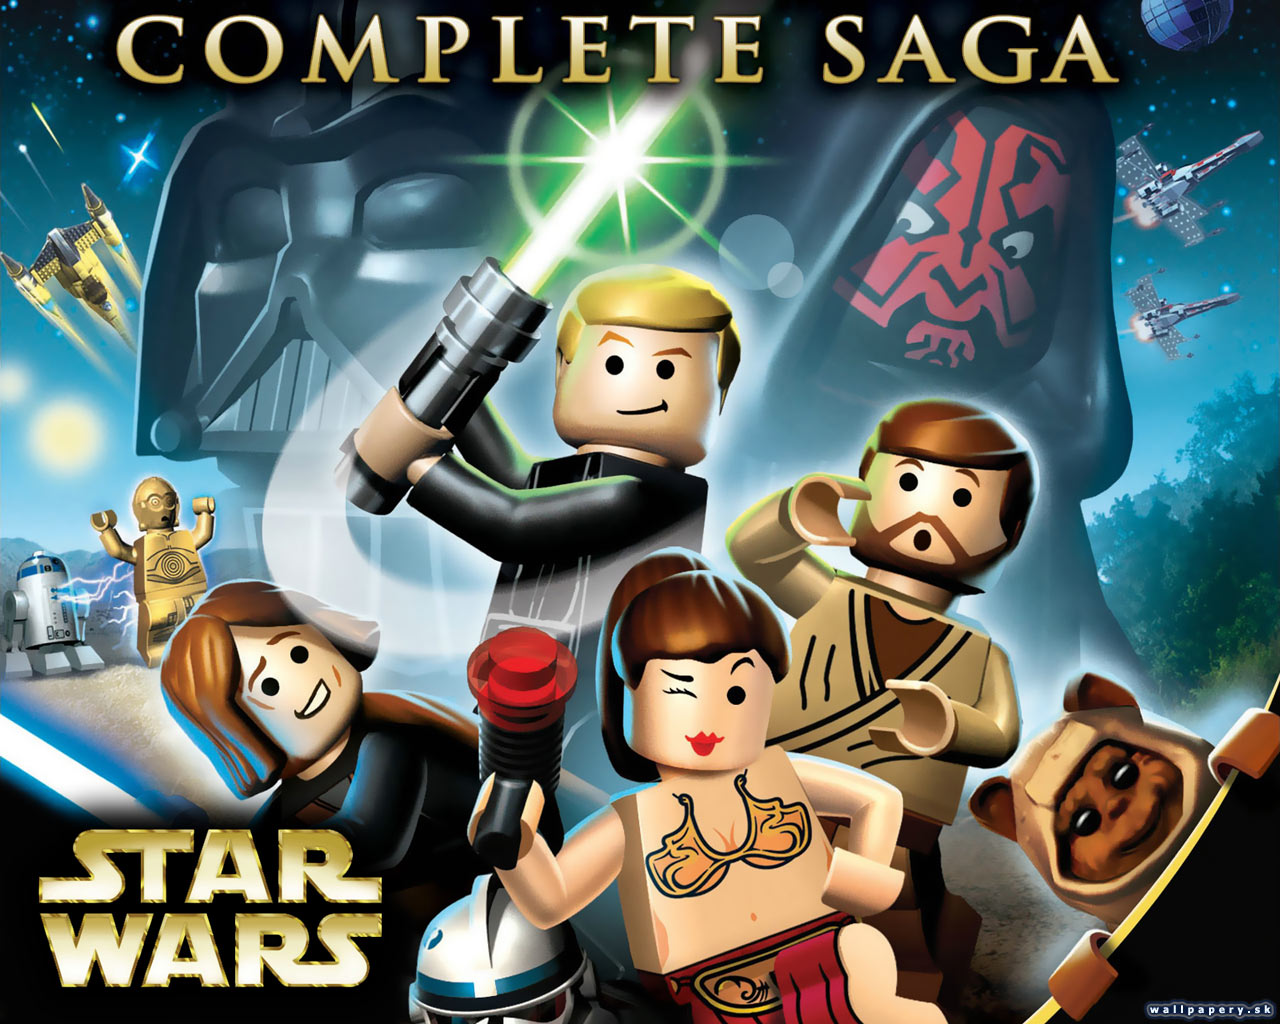 LEGO Star Wars: The Complete Saga - wallpaper 1